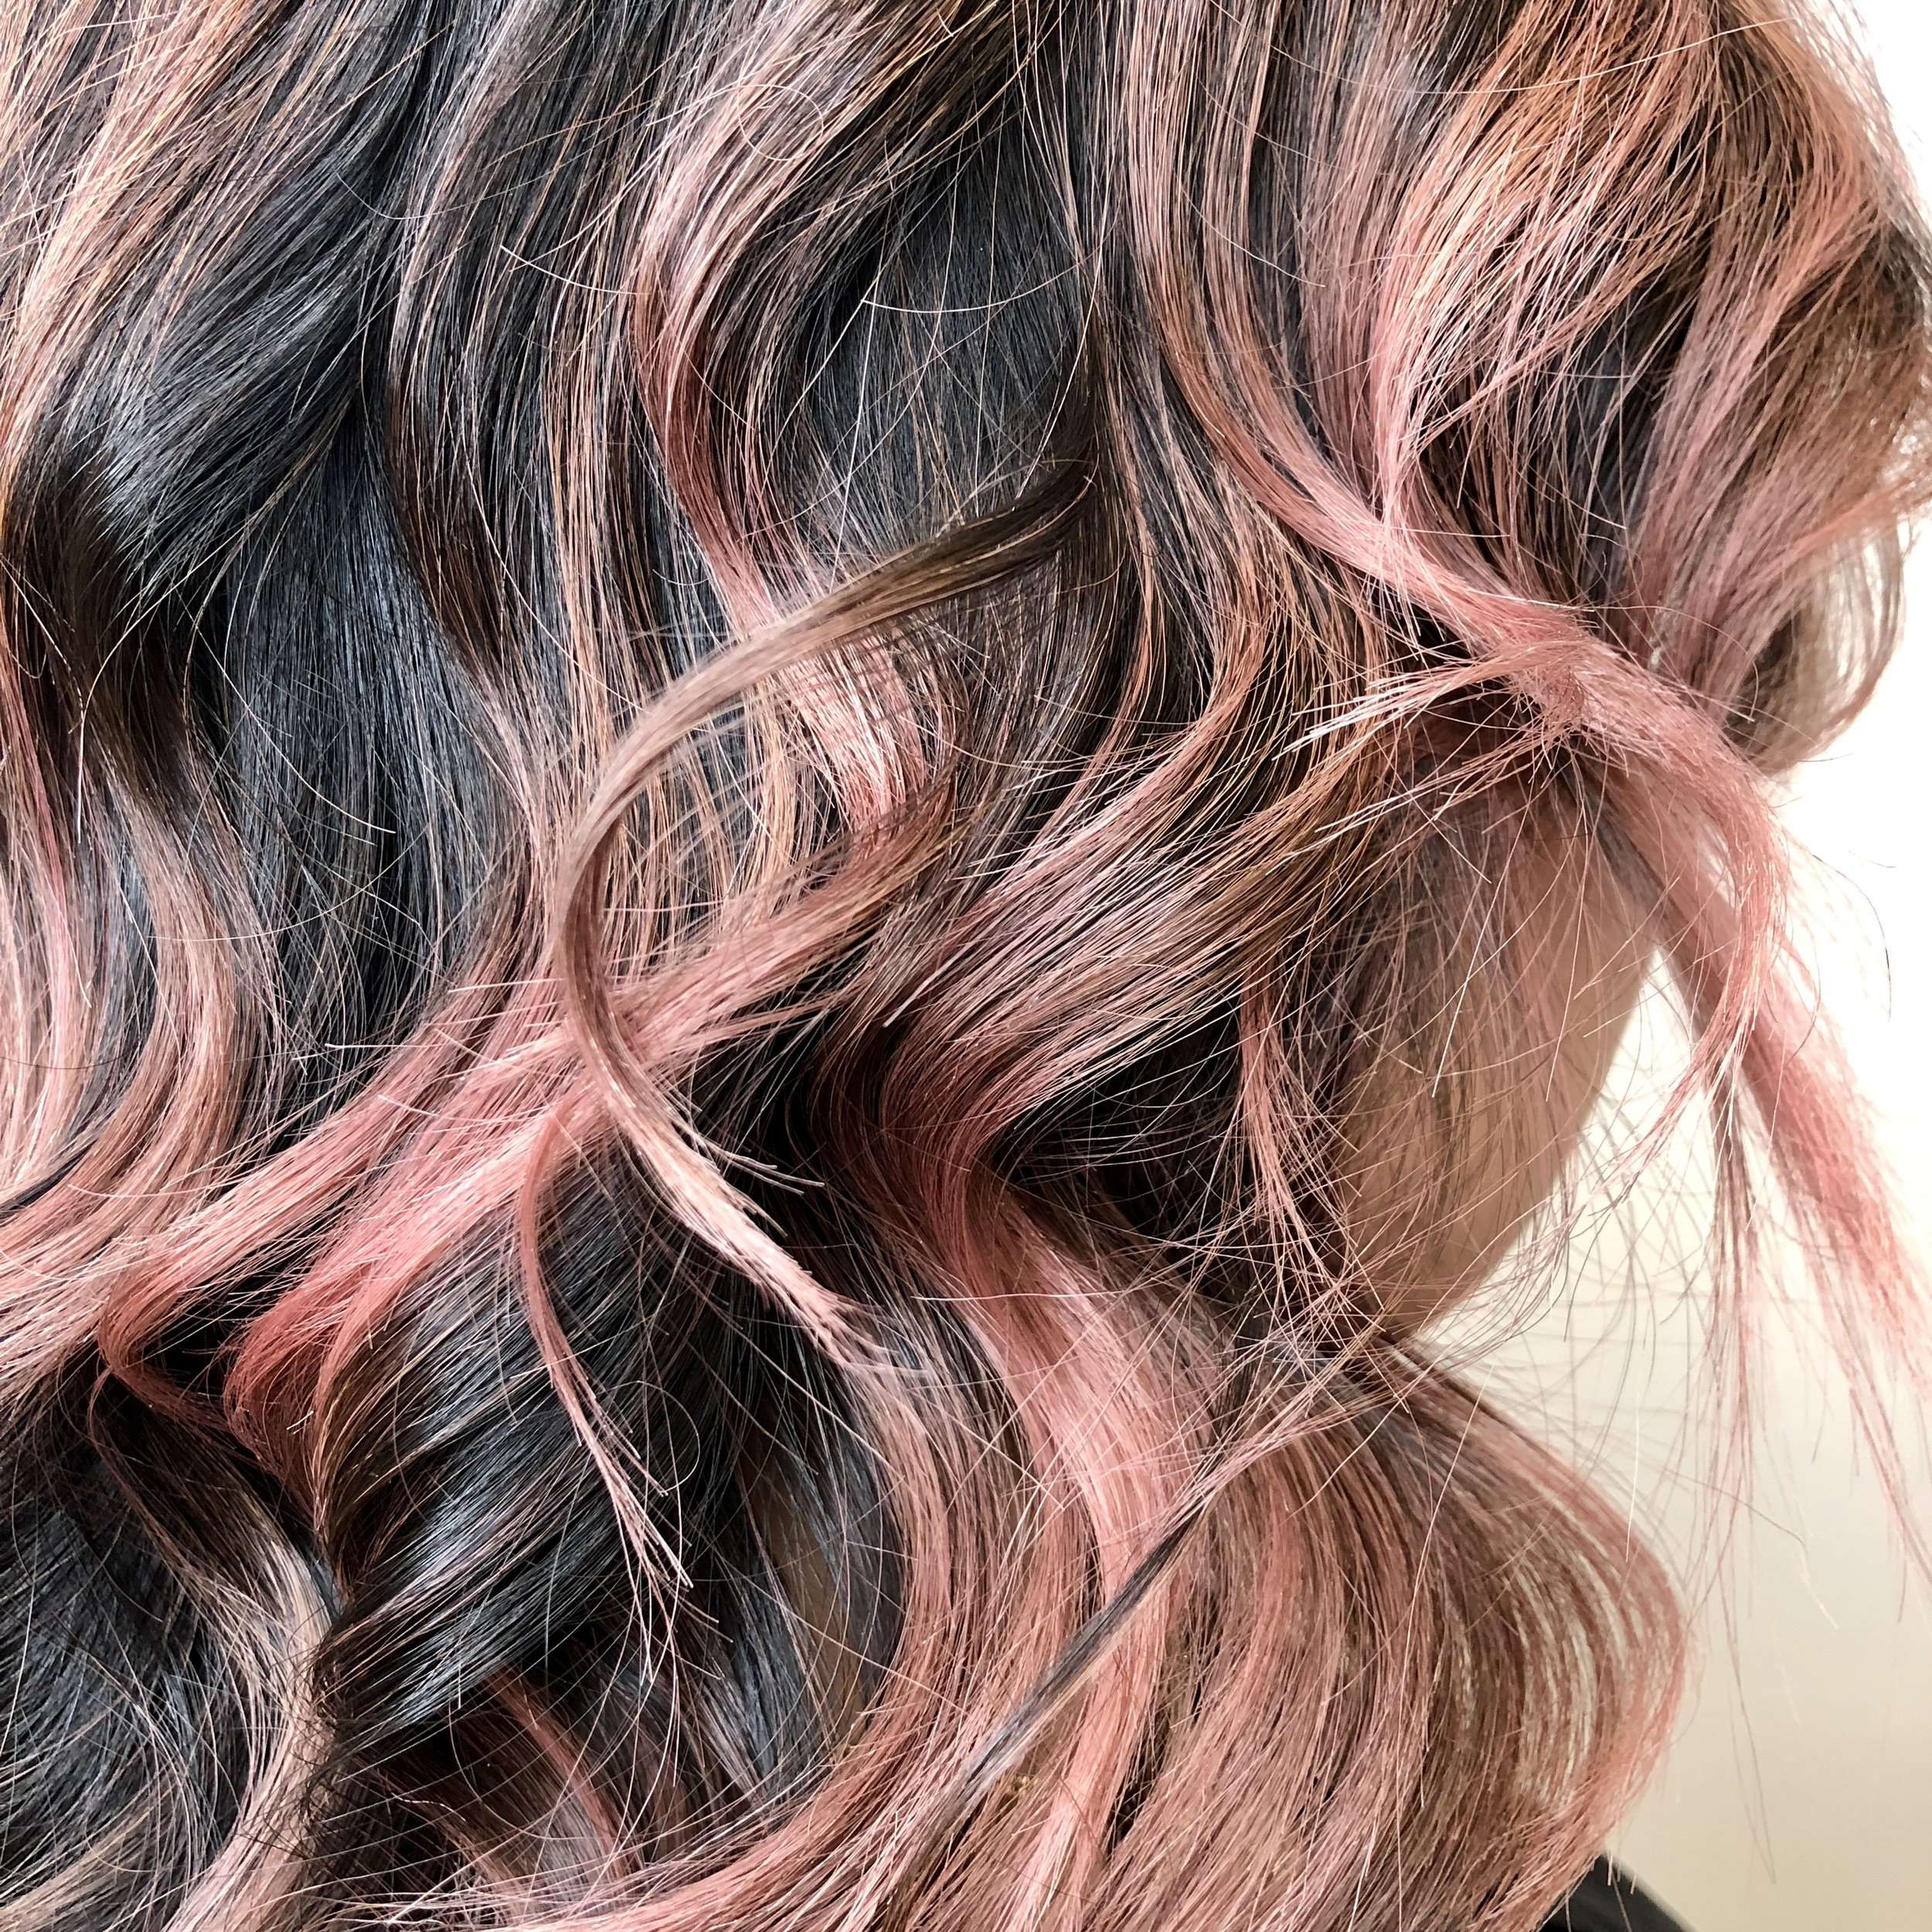 Washed-Out Pink - Pink hair is back on the scene for 2018!(#KimK) if the idea of pink hair intrigues and makes you nervous then a washed out subtle pink may be the solution for you. You will get the fun of an edgy color without the commitment or maintenance. If you have naturally light hair or are willing to lighten your hair then a light pink glaze can be applied. The glaze will show your natural hair color thru to give it a washed out look.